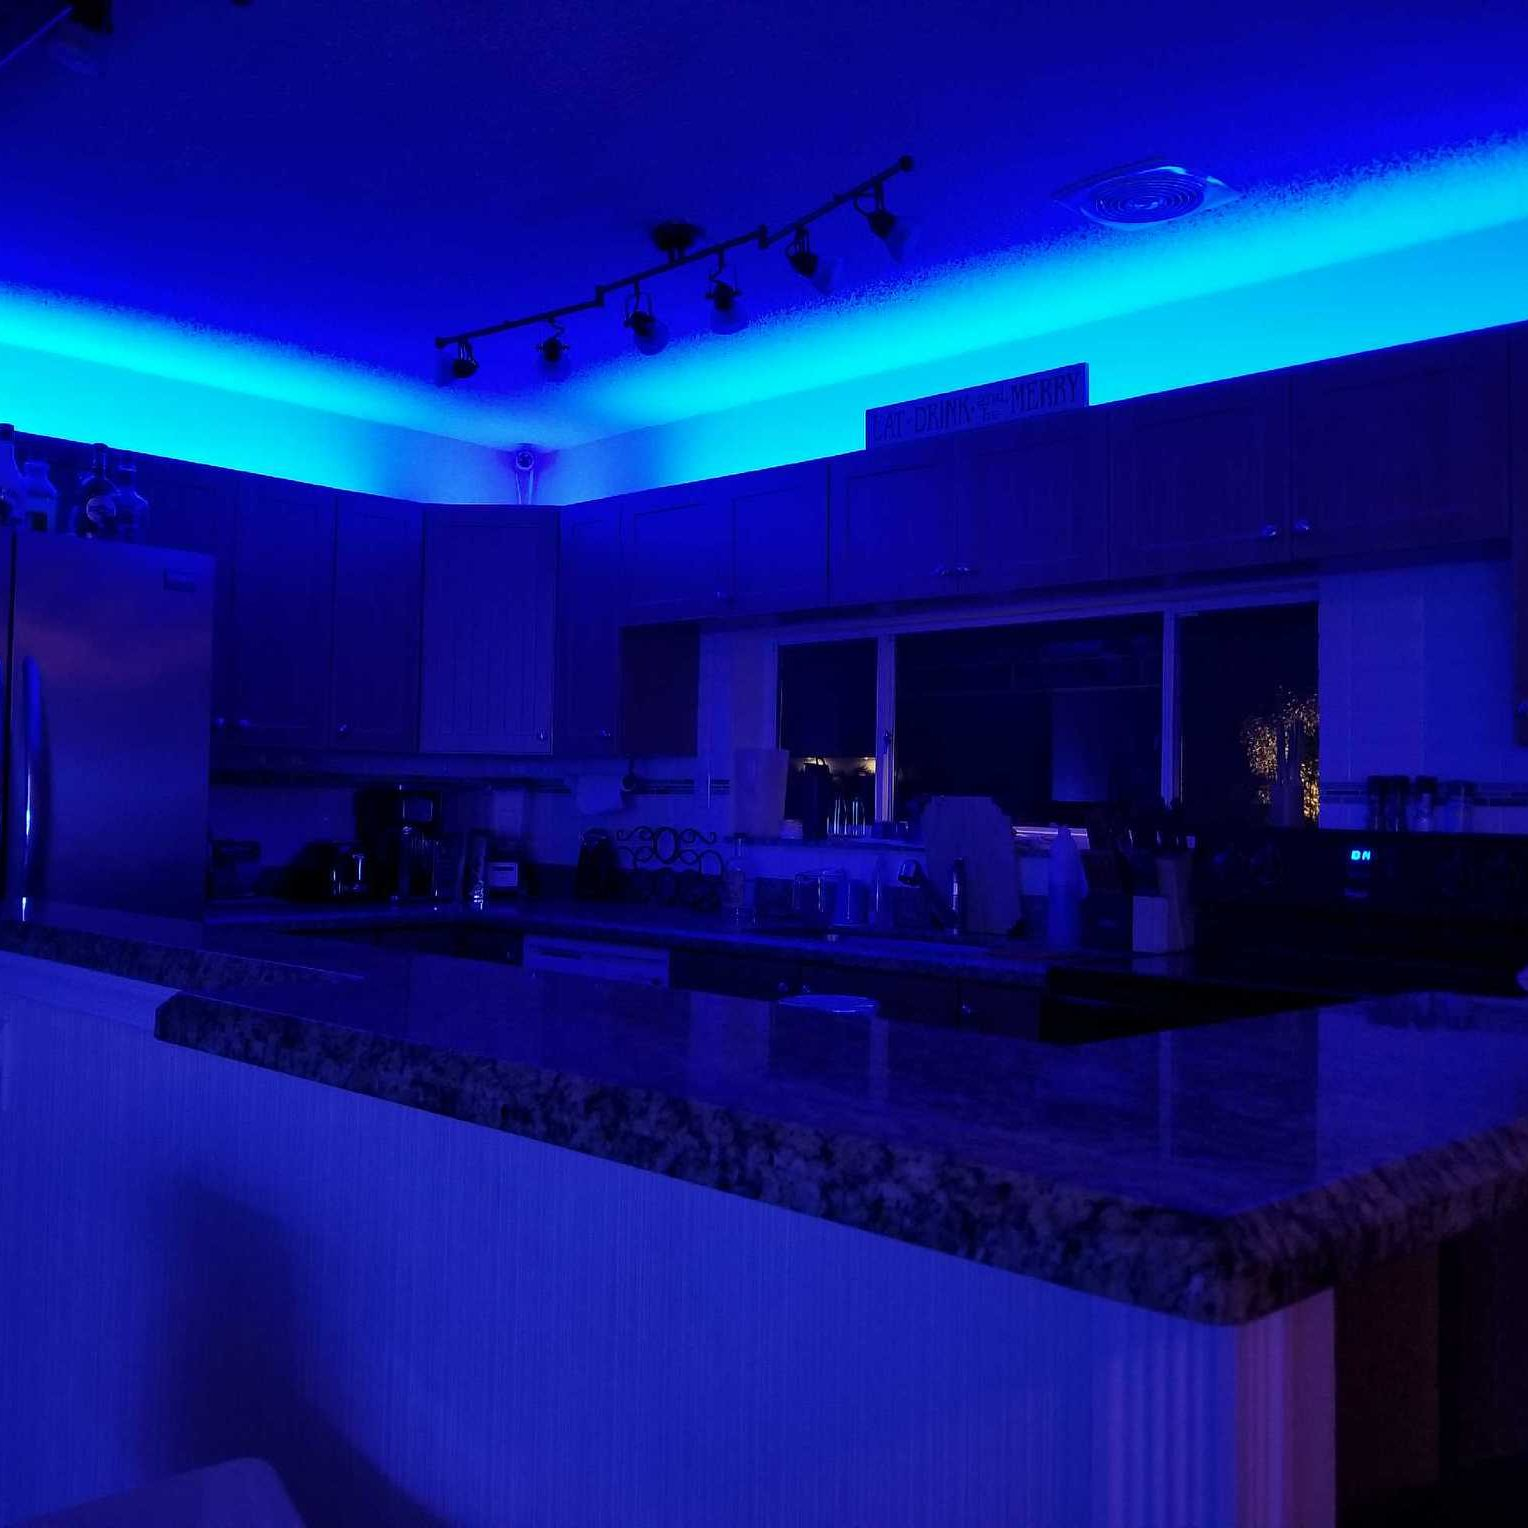 led lighting can save you money on your electricity bill